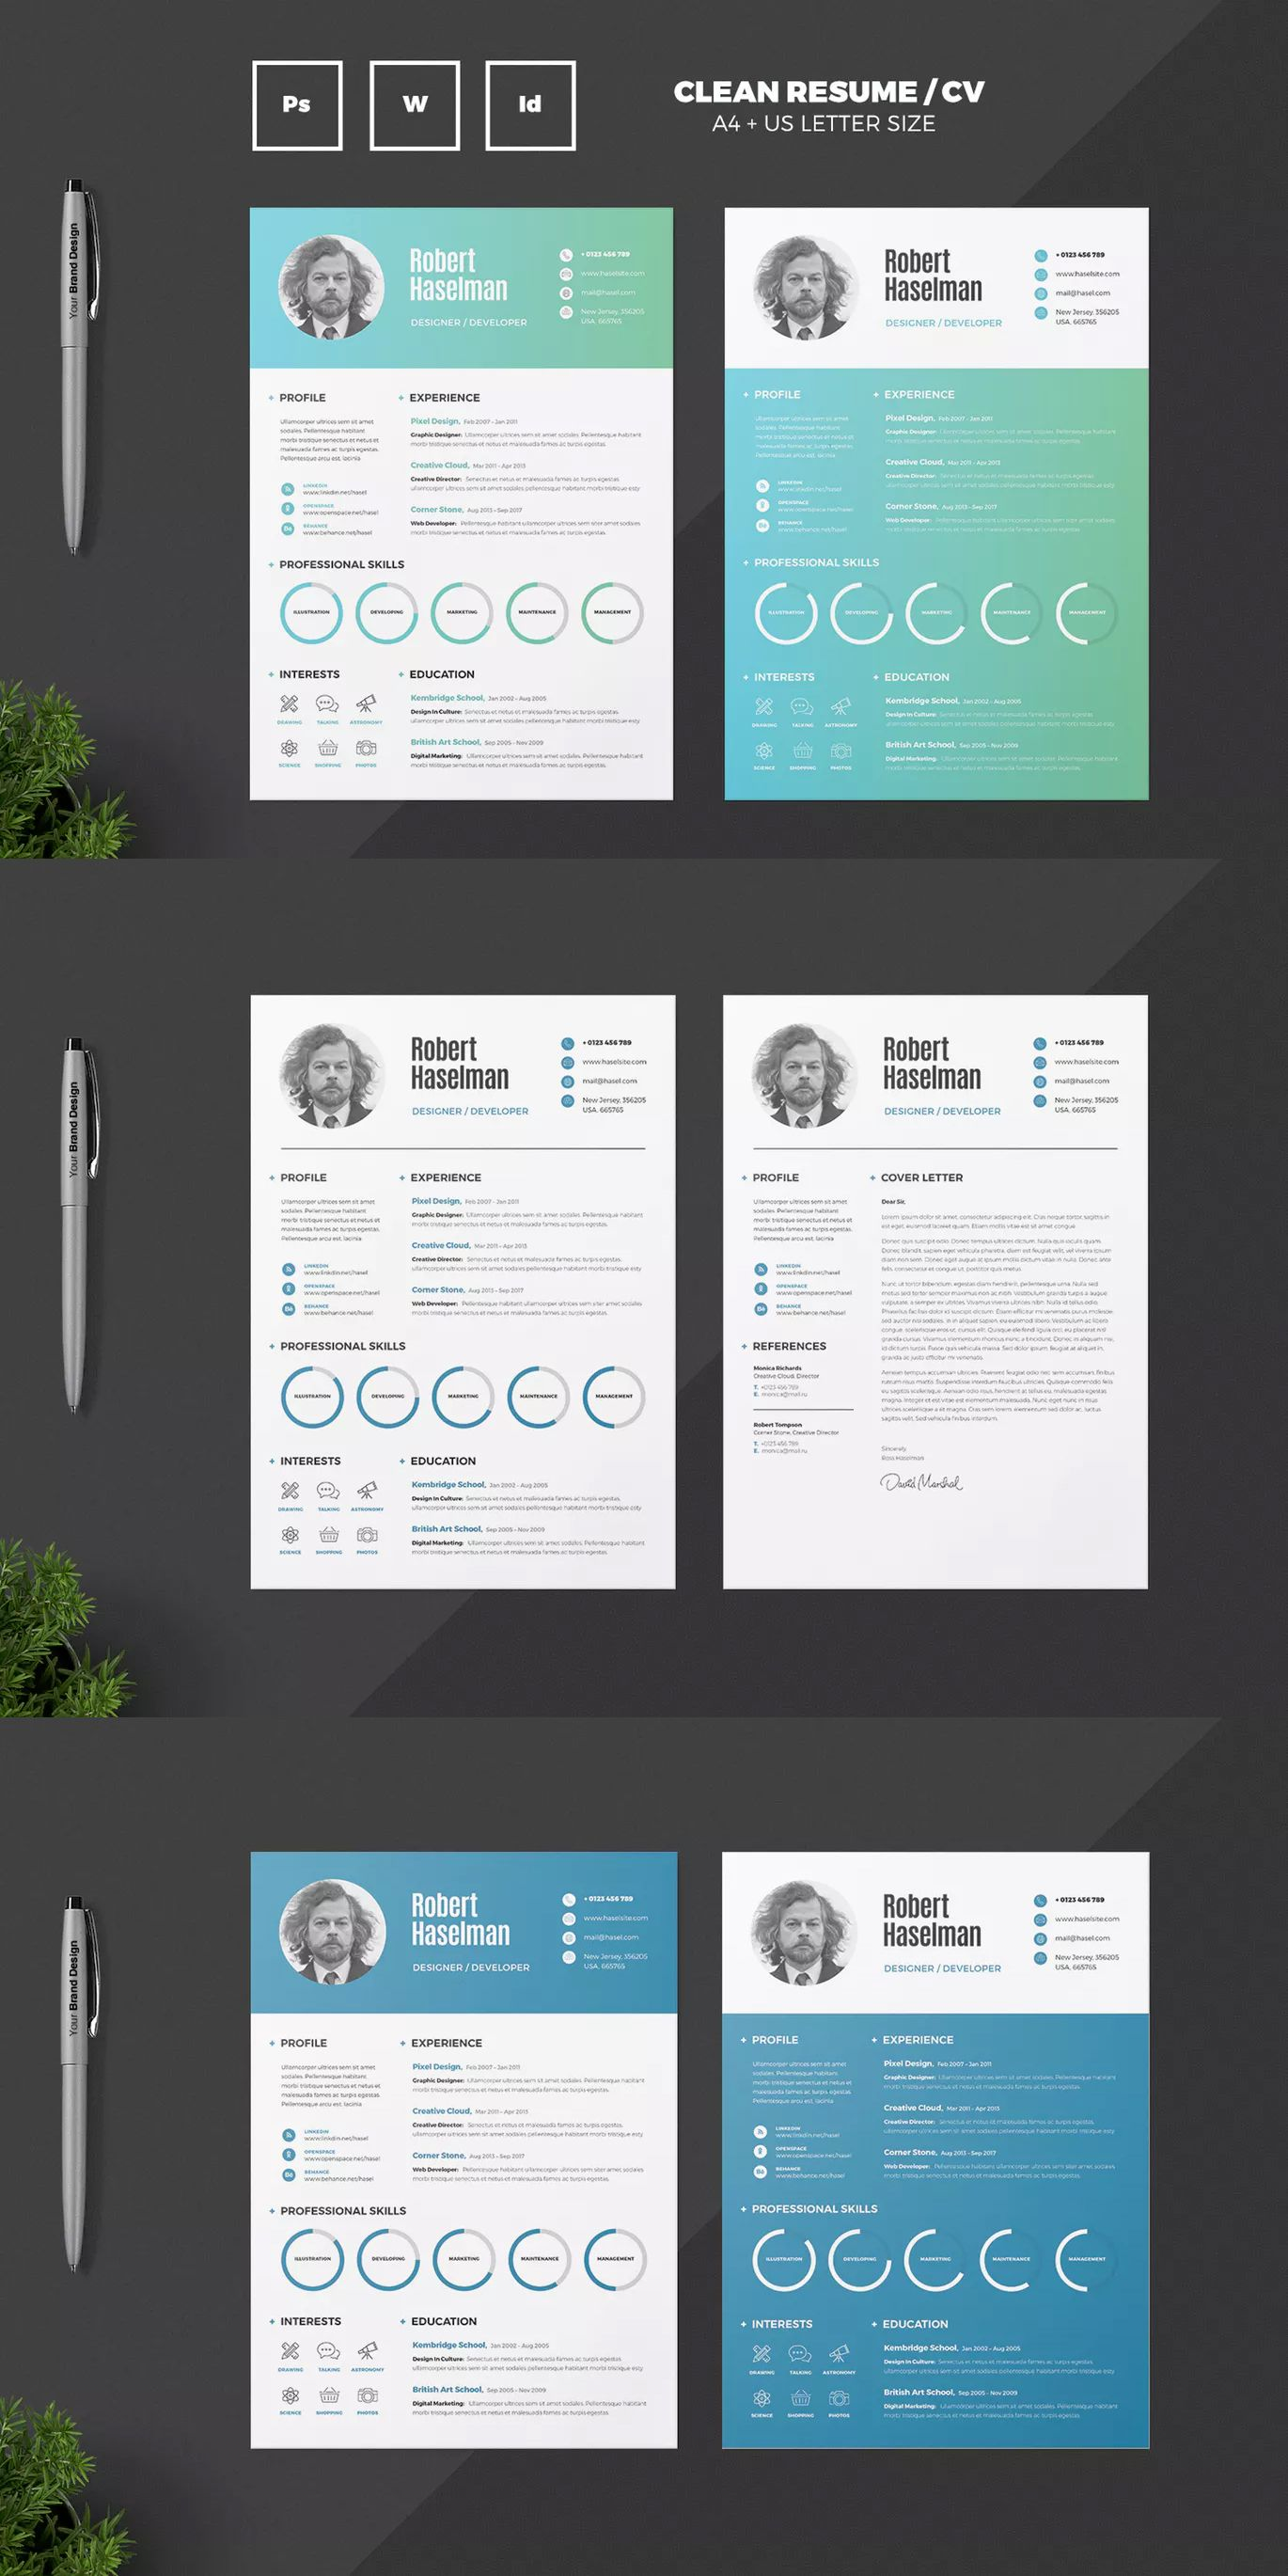 Resume Website Template. Of The Best Free And Premium Cv And Resume ...